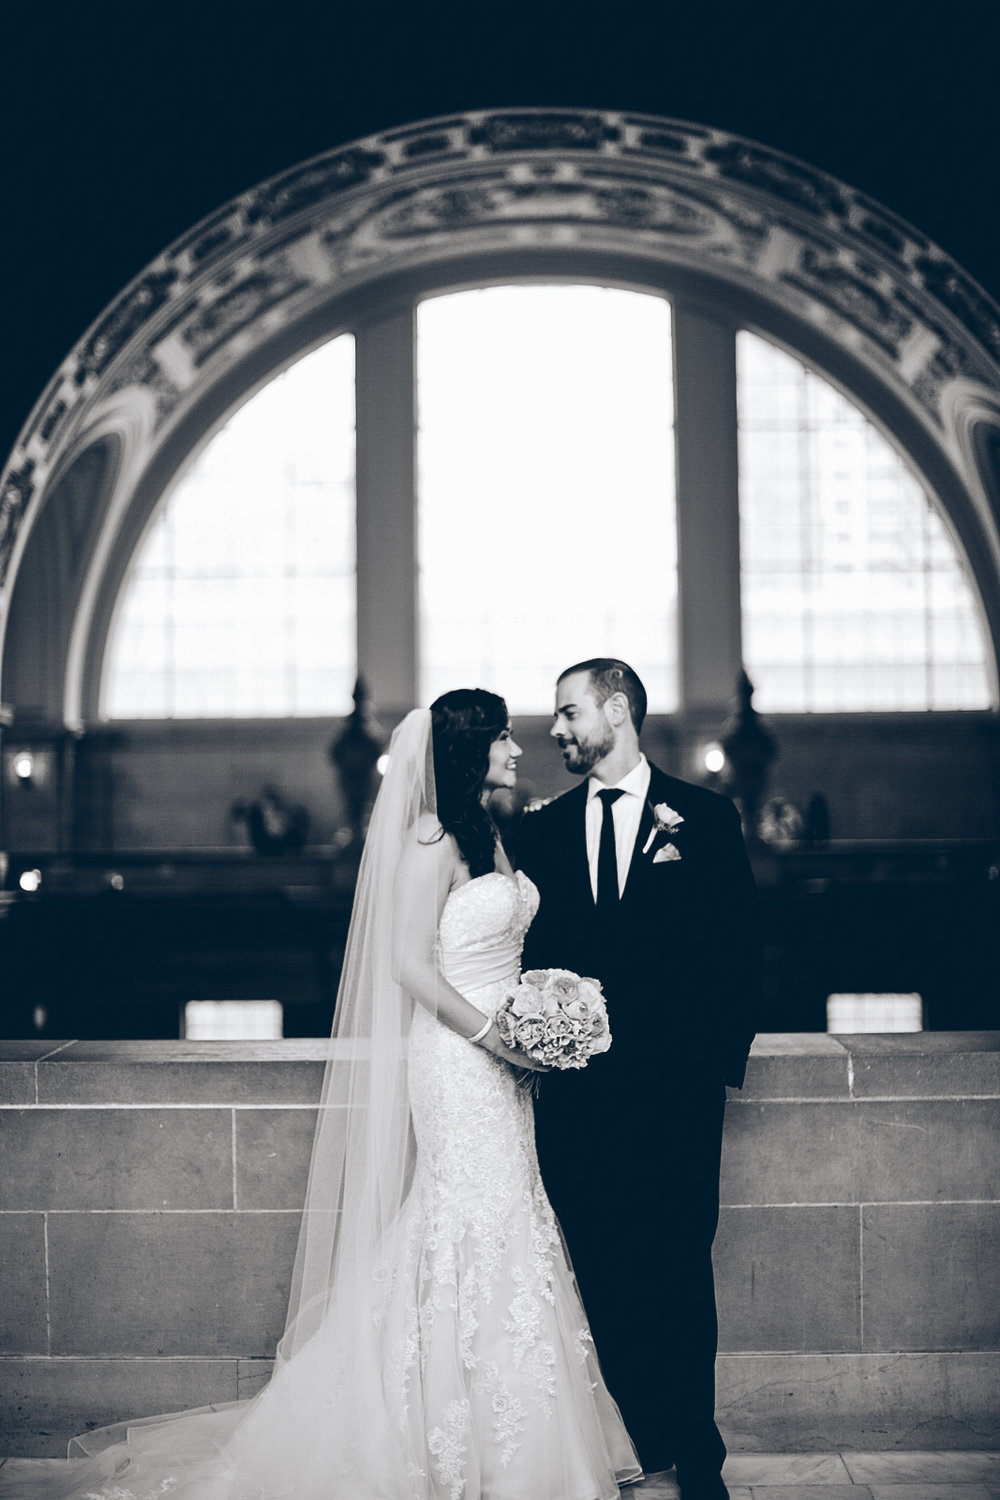 San_francisco_city_hall_wedding_photography_meegan_travis_ebony_siovhan_bokeh_photography_34.jpg